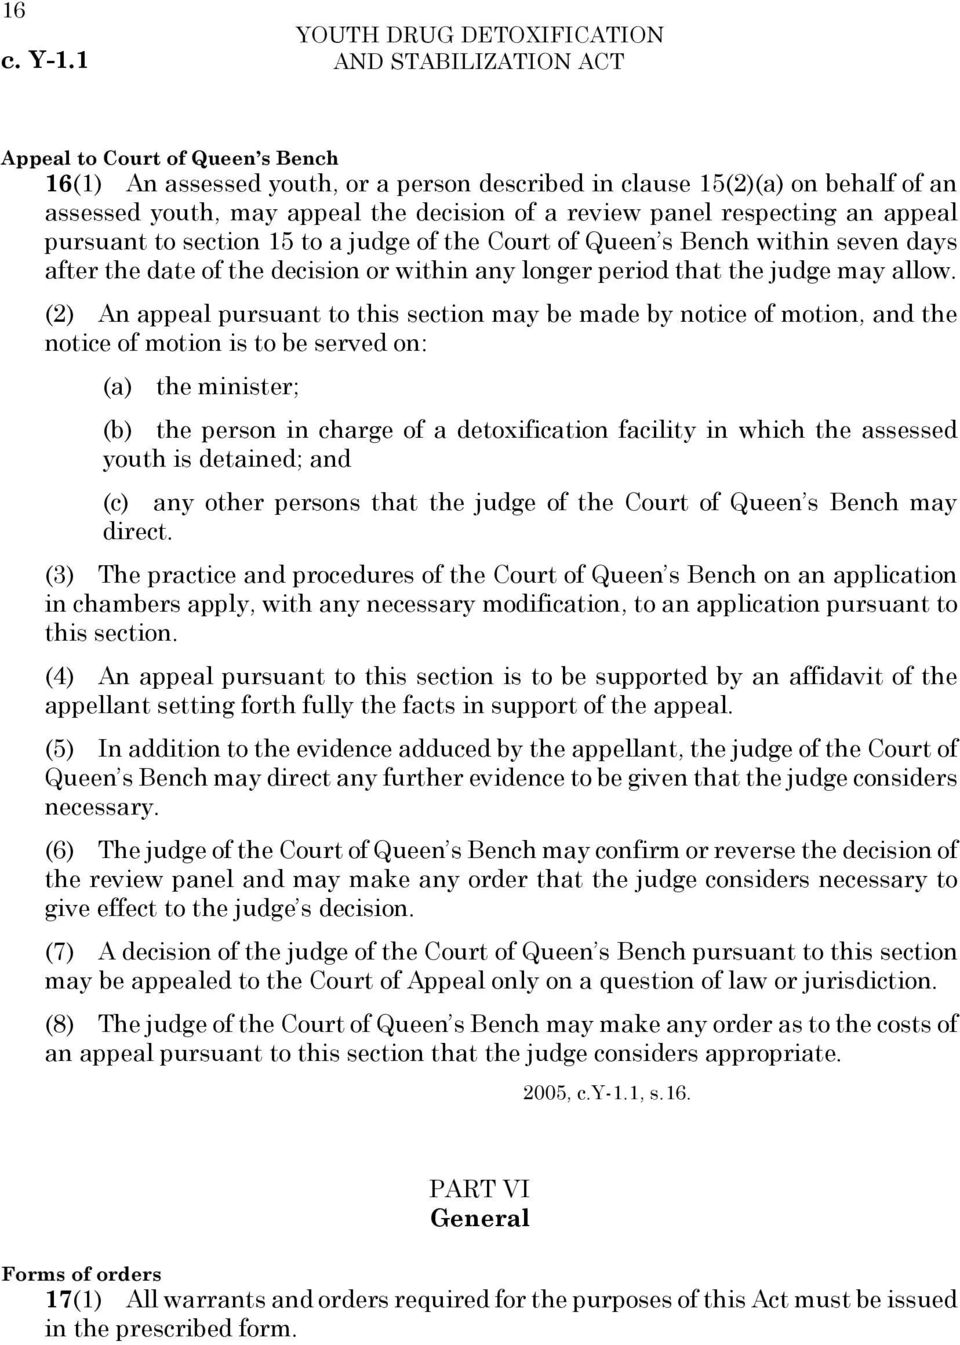 (2) An appeal pursuant to this section may be made by notice of motion, and the notice of motion is to be served on: (a) the minister; (b) the person in charge of a detoxification facility in which